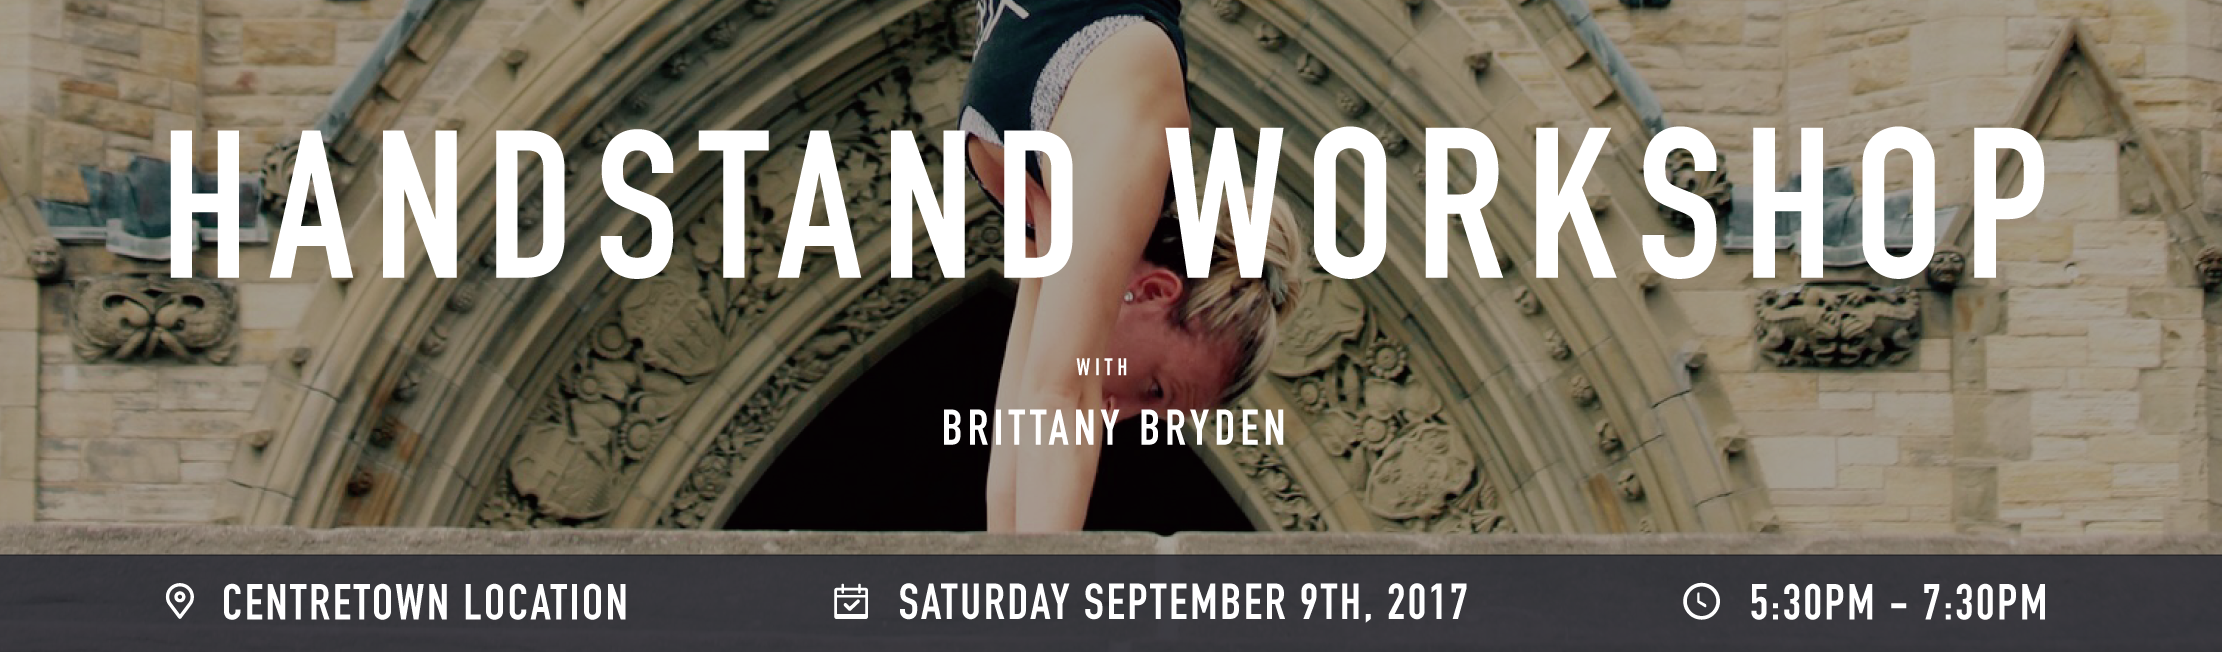 Handstand workshop banner  5